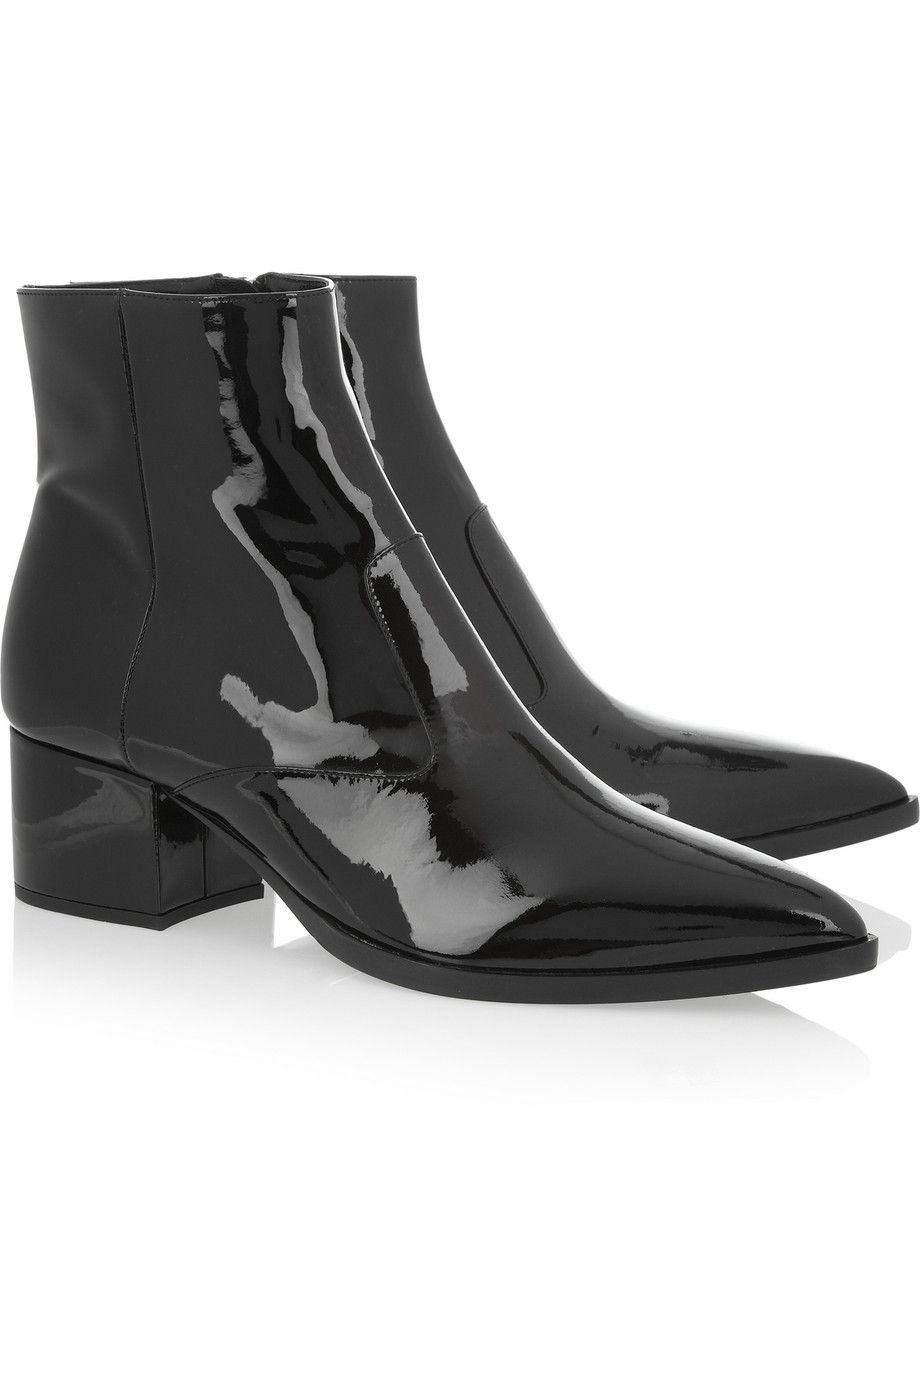 Miu Miu|Patent-leather ankle boots. Shop the Tough Luxe issue of The Edit magazine.